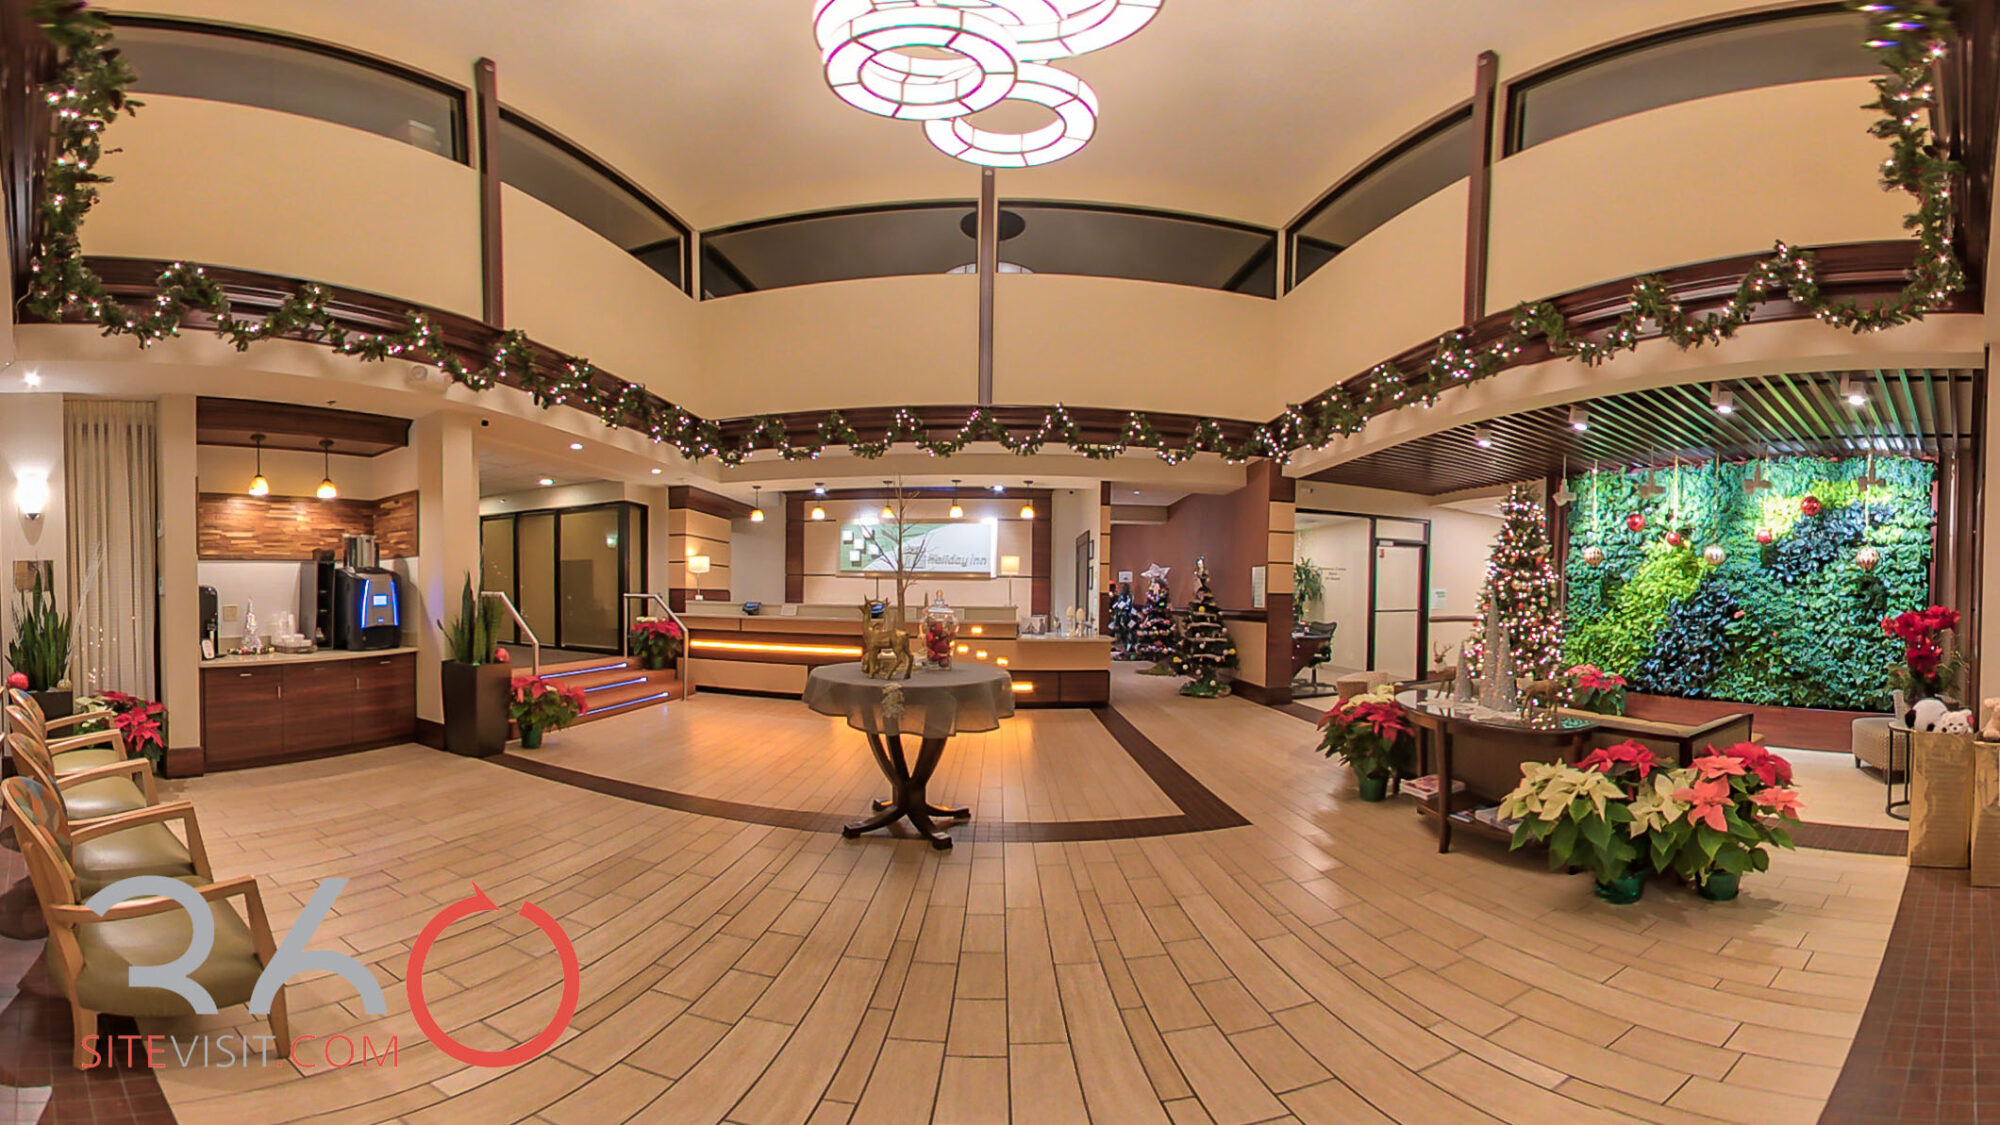 55-Holiday Inn Hasbrouck Hights, New Jersey wedding venue virtual tour by 360sitevisit